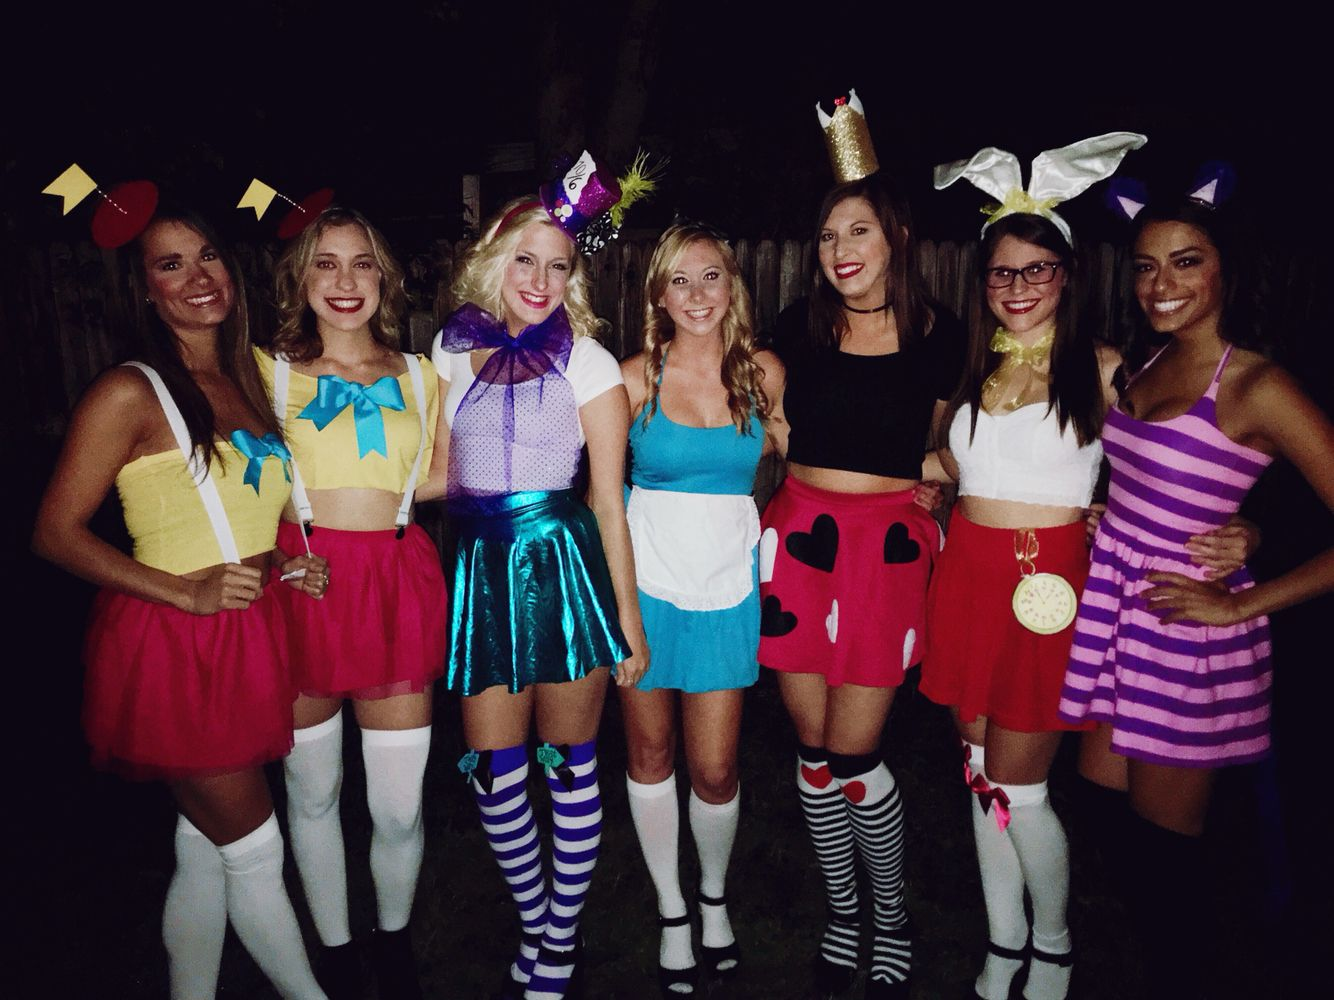 Costume ideas for groups - Alice In Wonderland Group Costume